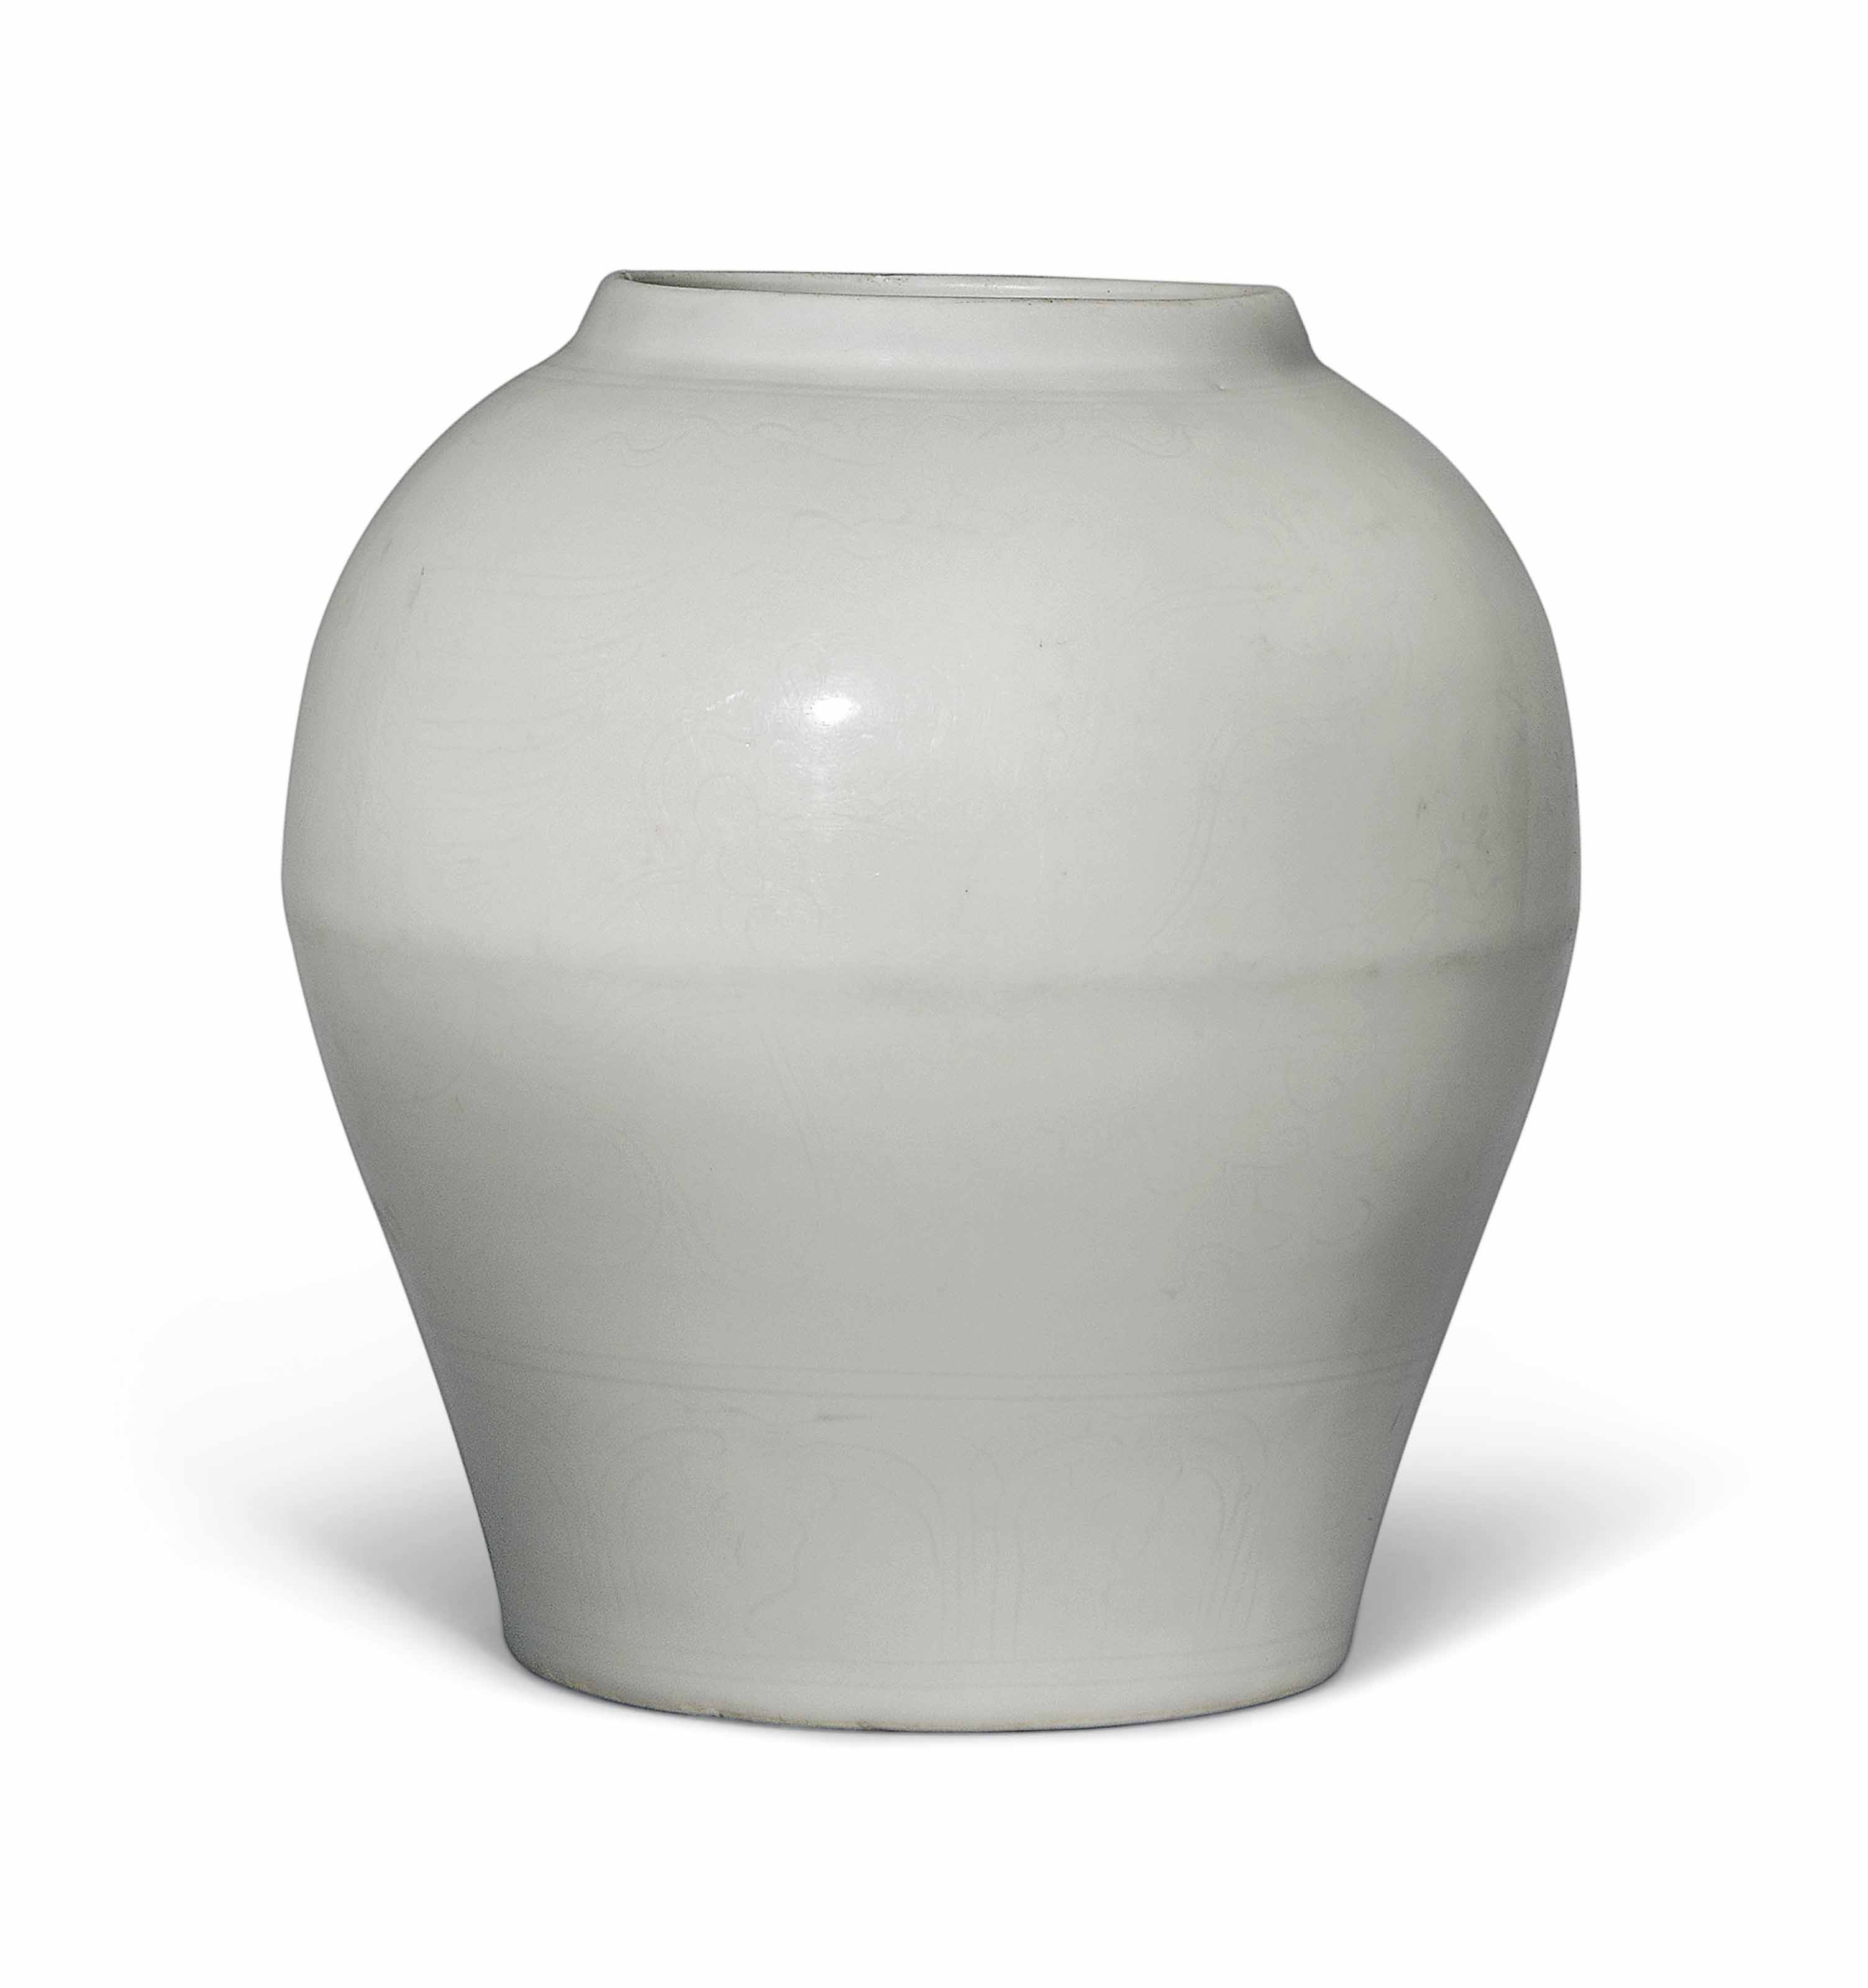 AN ANHUA-DECORATED WHITE-GLAZE